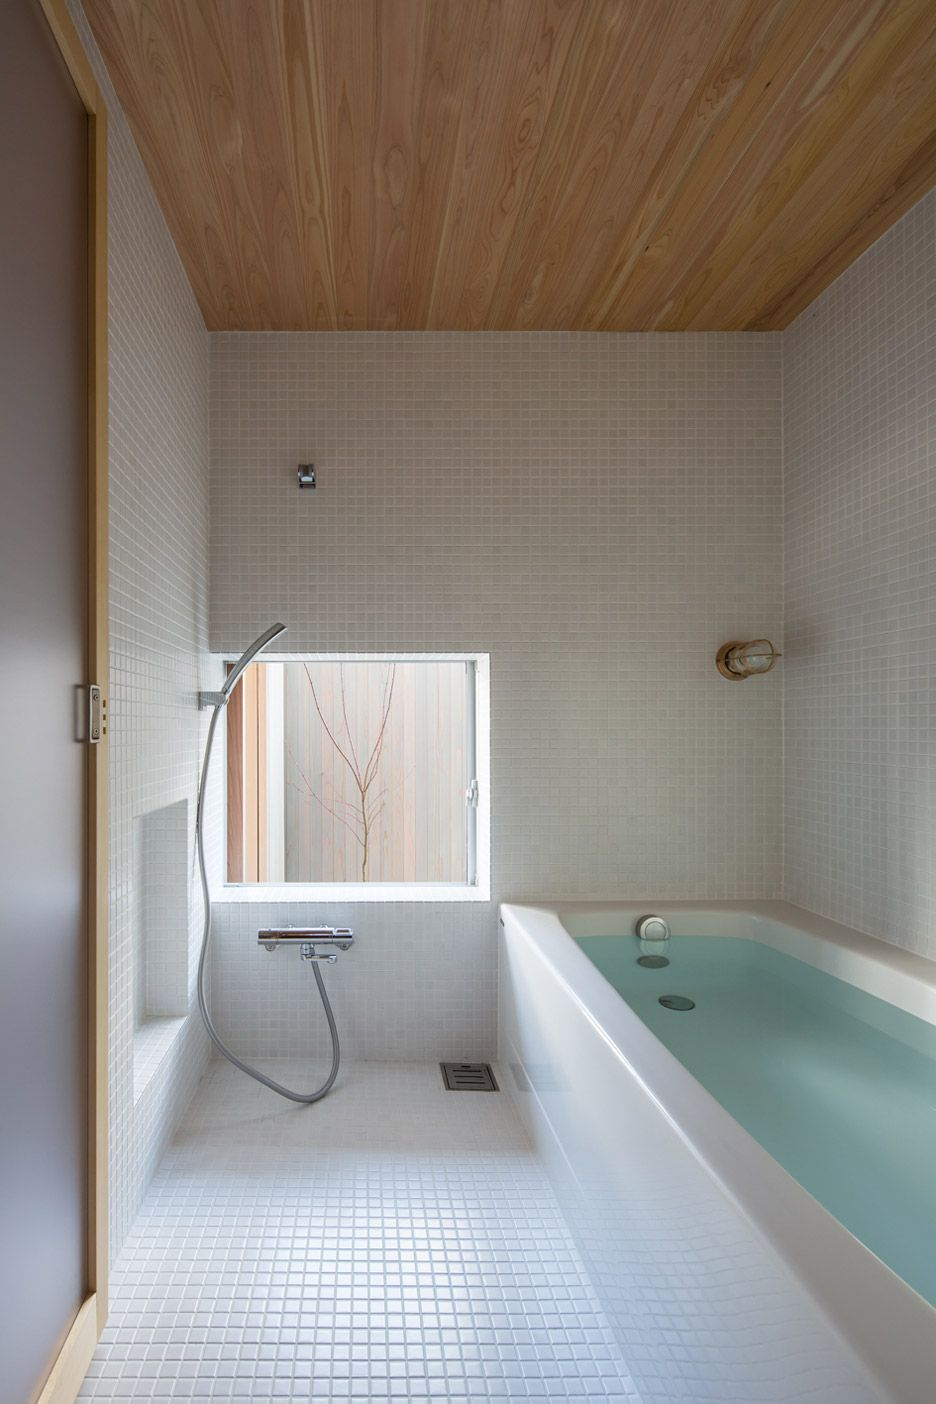 Badezimmer In Japan Plywood Interiors Provide Compact Japanese House Storage Cozy Vibes